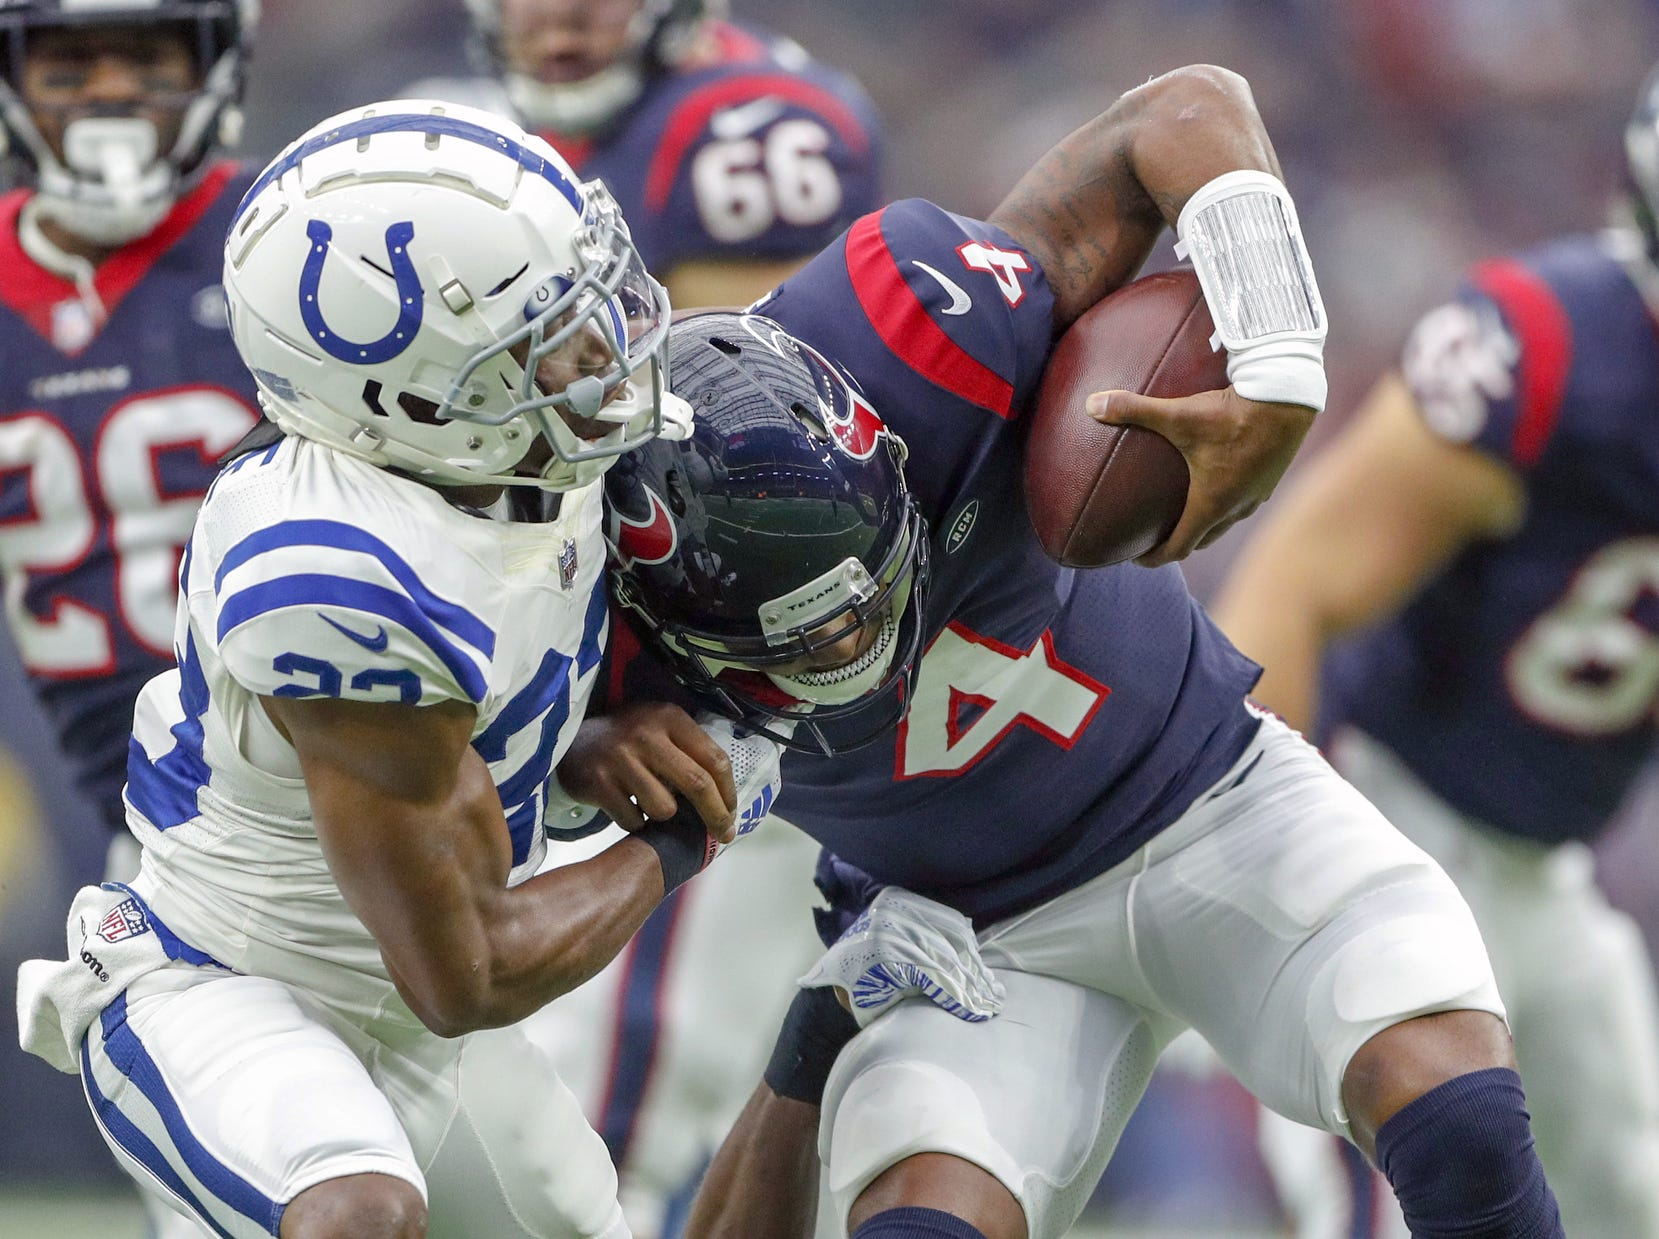 Indianapolis Colts cornerback Kenny Moore (23) sacks Houston Texans quarterback Deshaun Watson (4) at NRG Stadium in Houston on Sunday, Dec. 9, 2018.